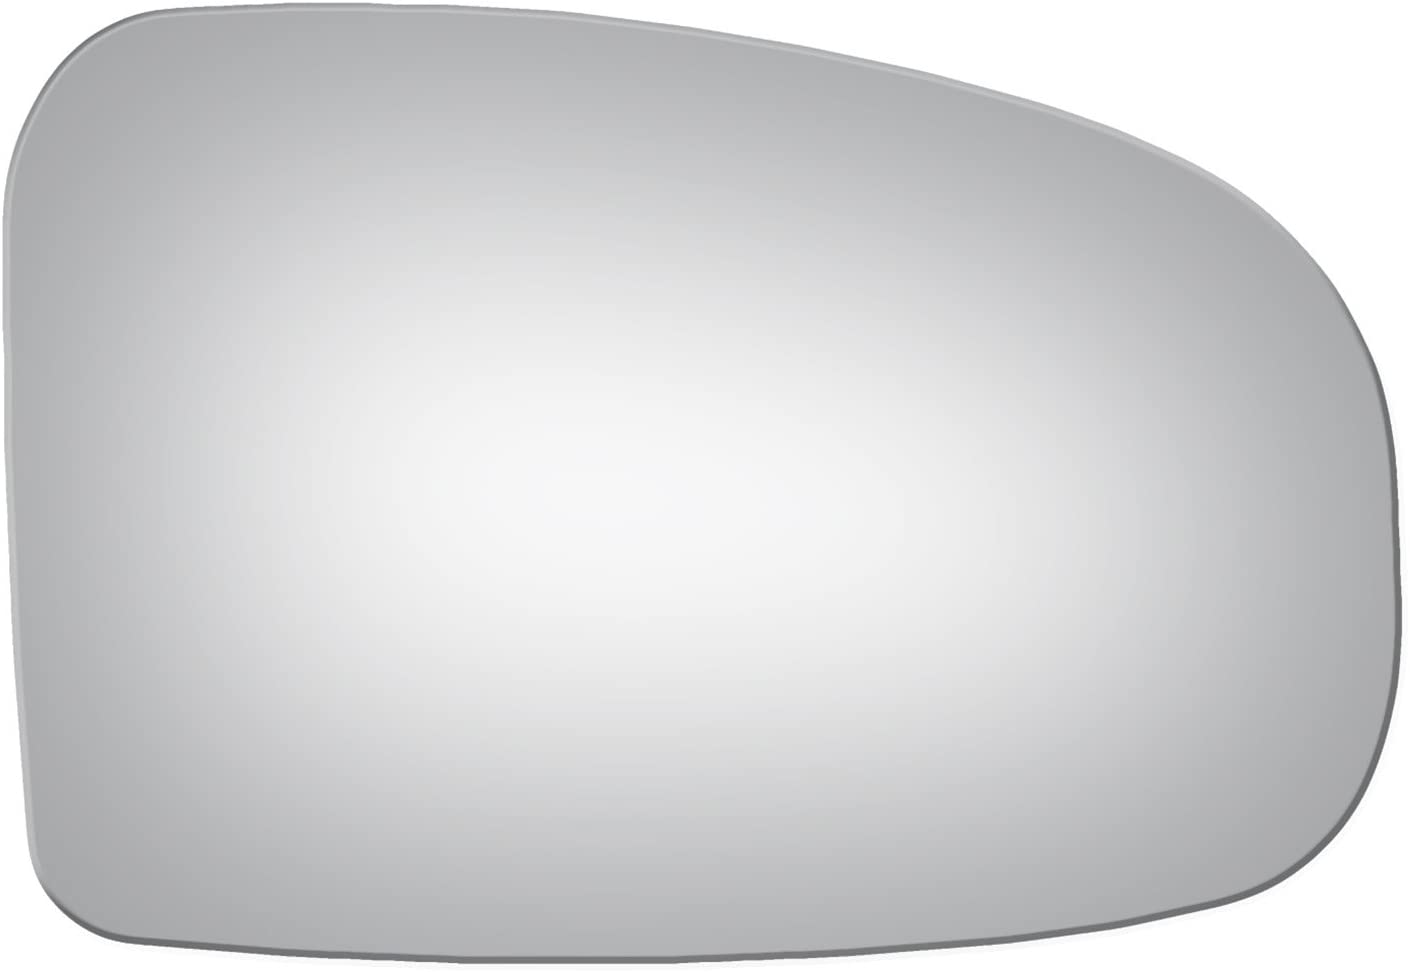 Luxury goods Burco 5398 Max 54% OFF Convex Passenger Side 10 Glass Mirror for Replacement